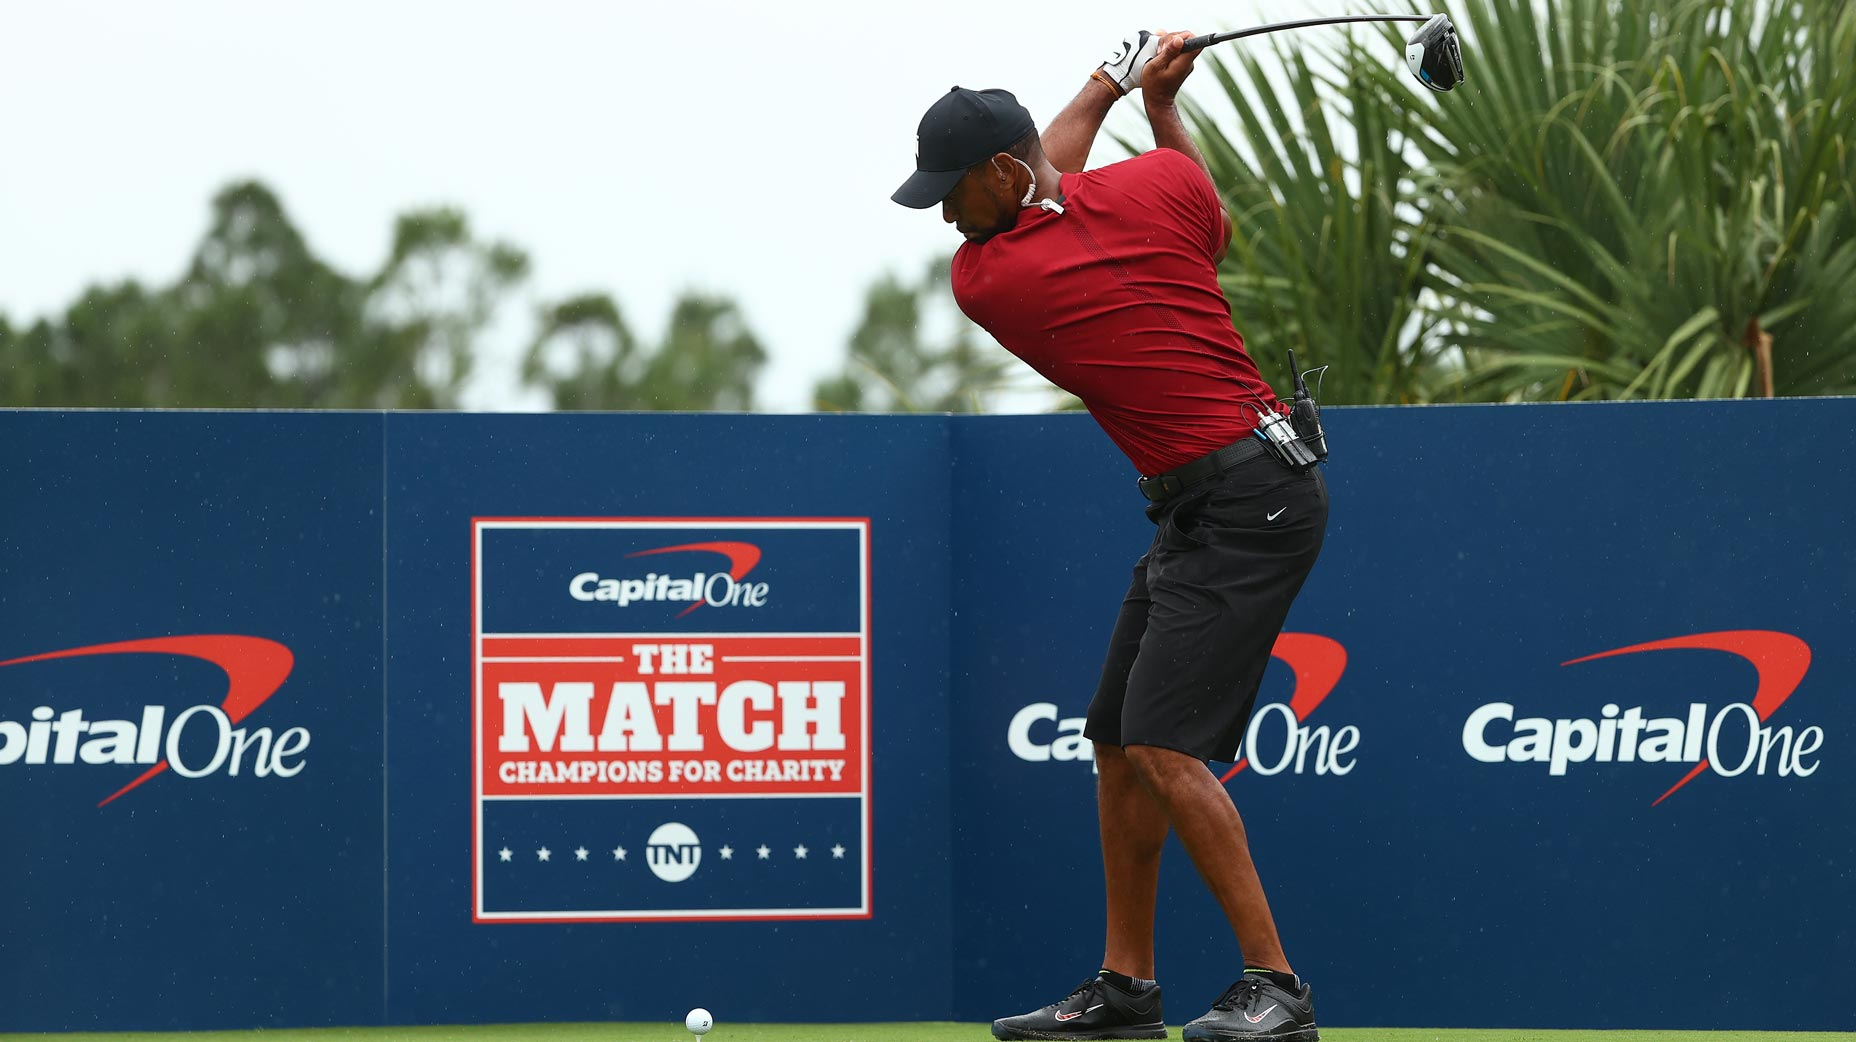 tiger woods hits tee shot during the match ii